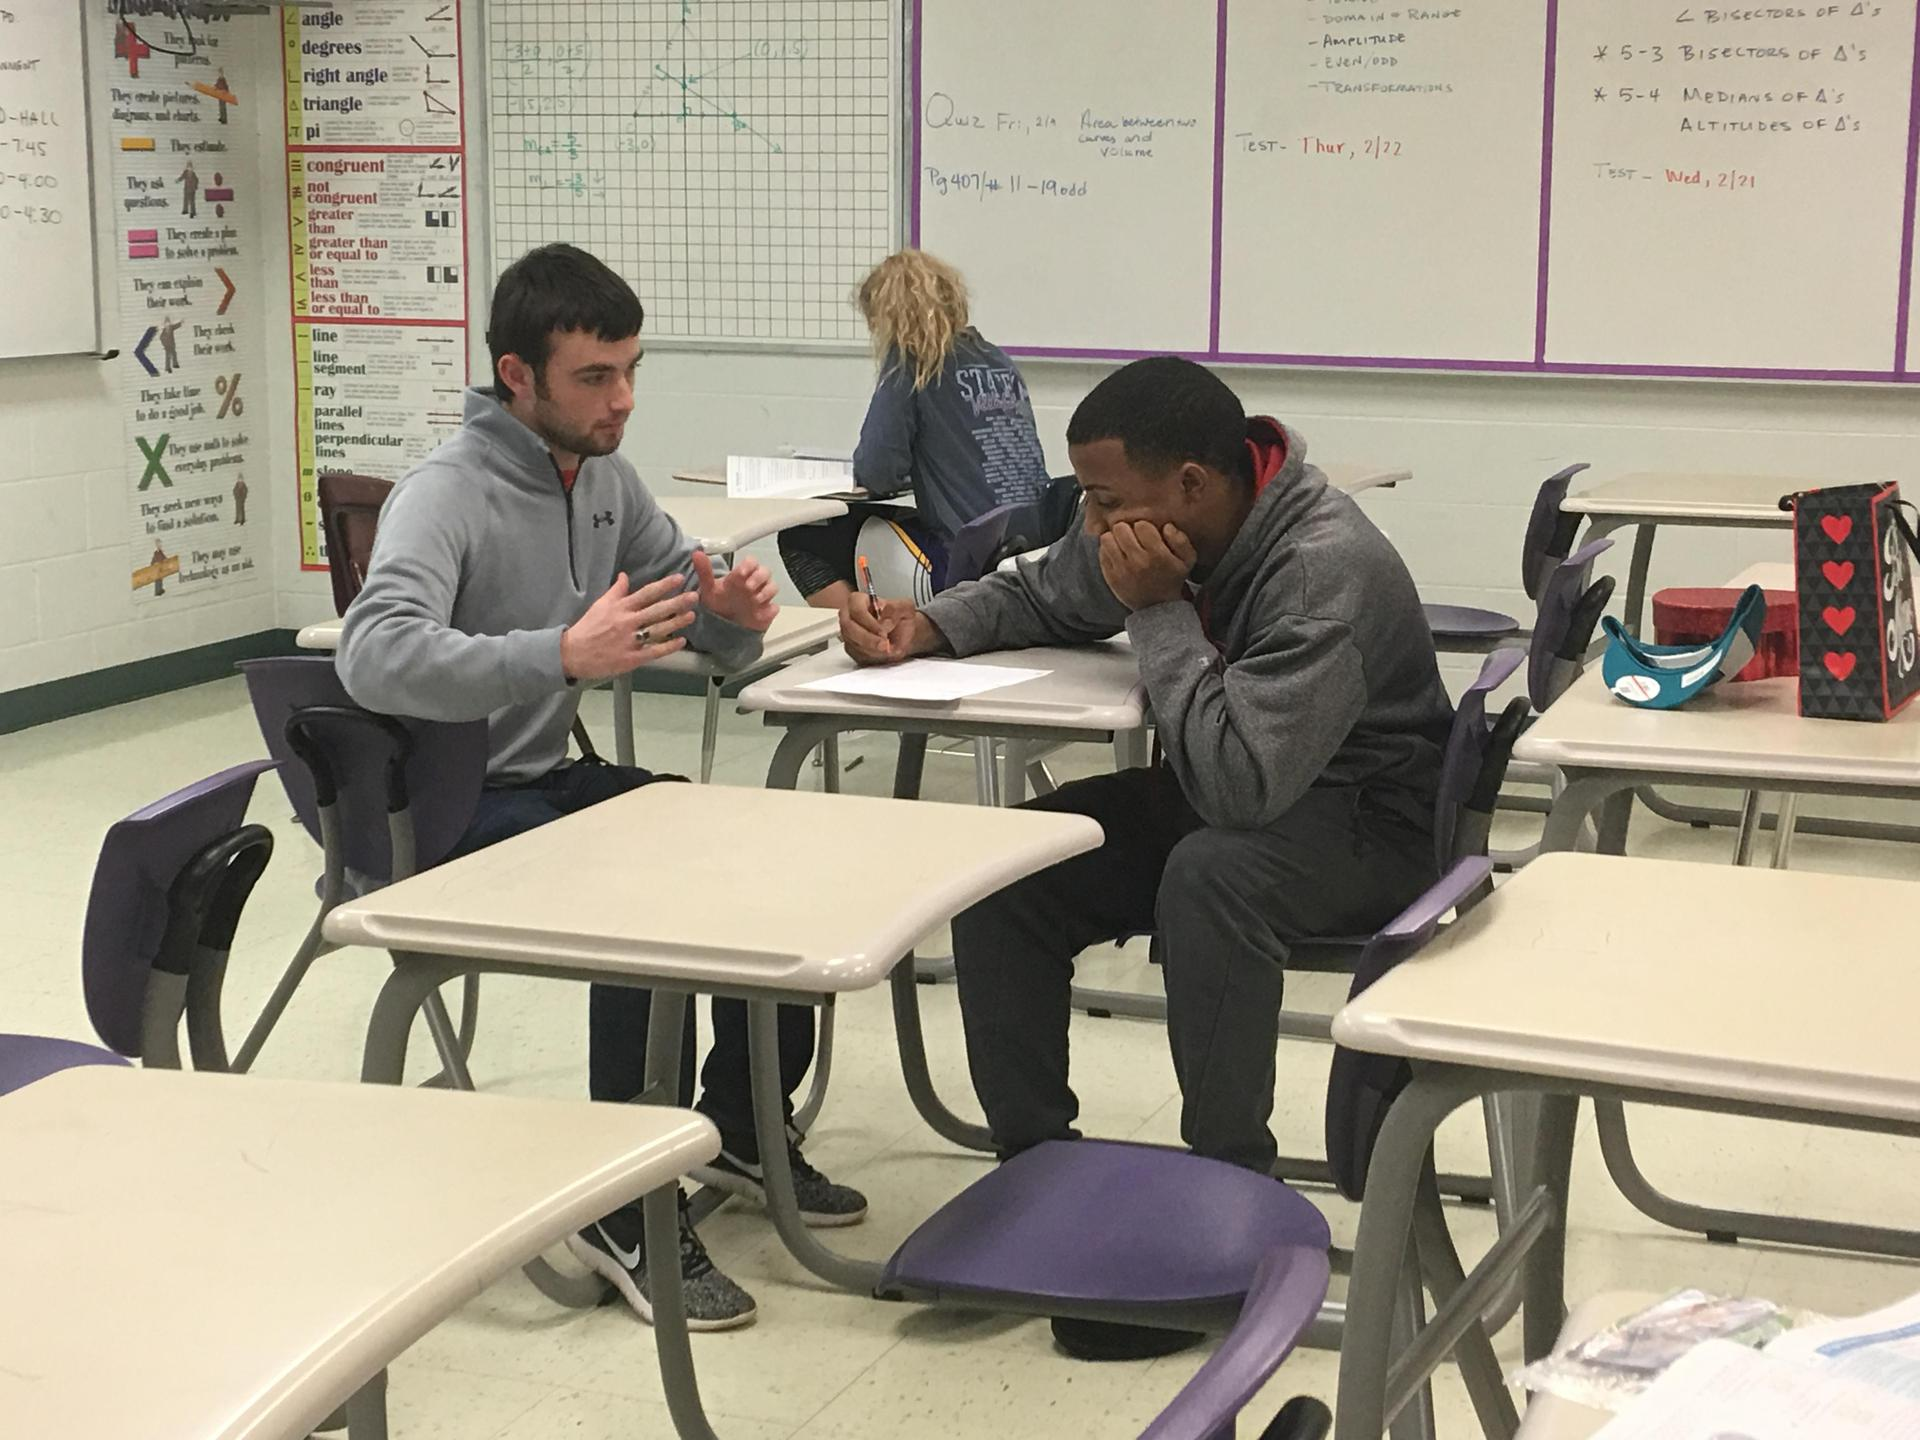 two male students sitting in desks talking